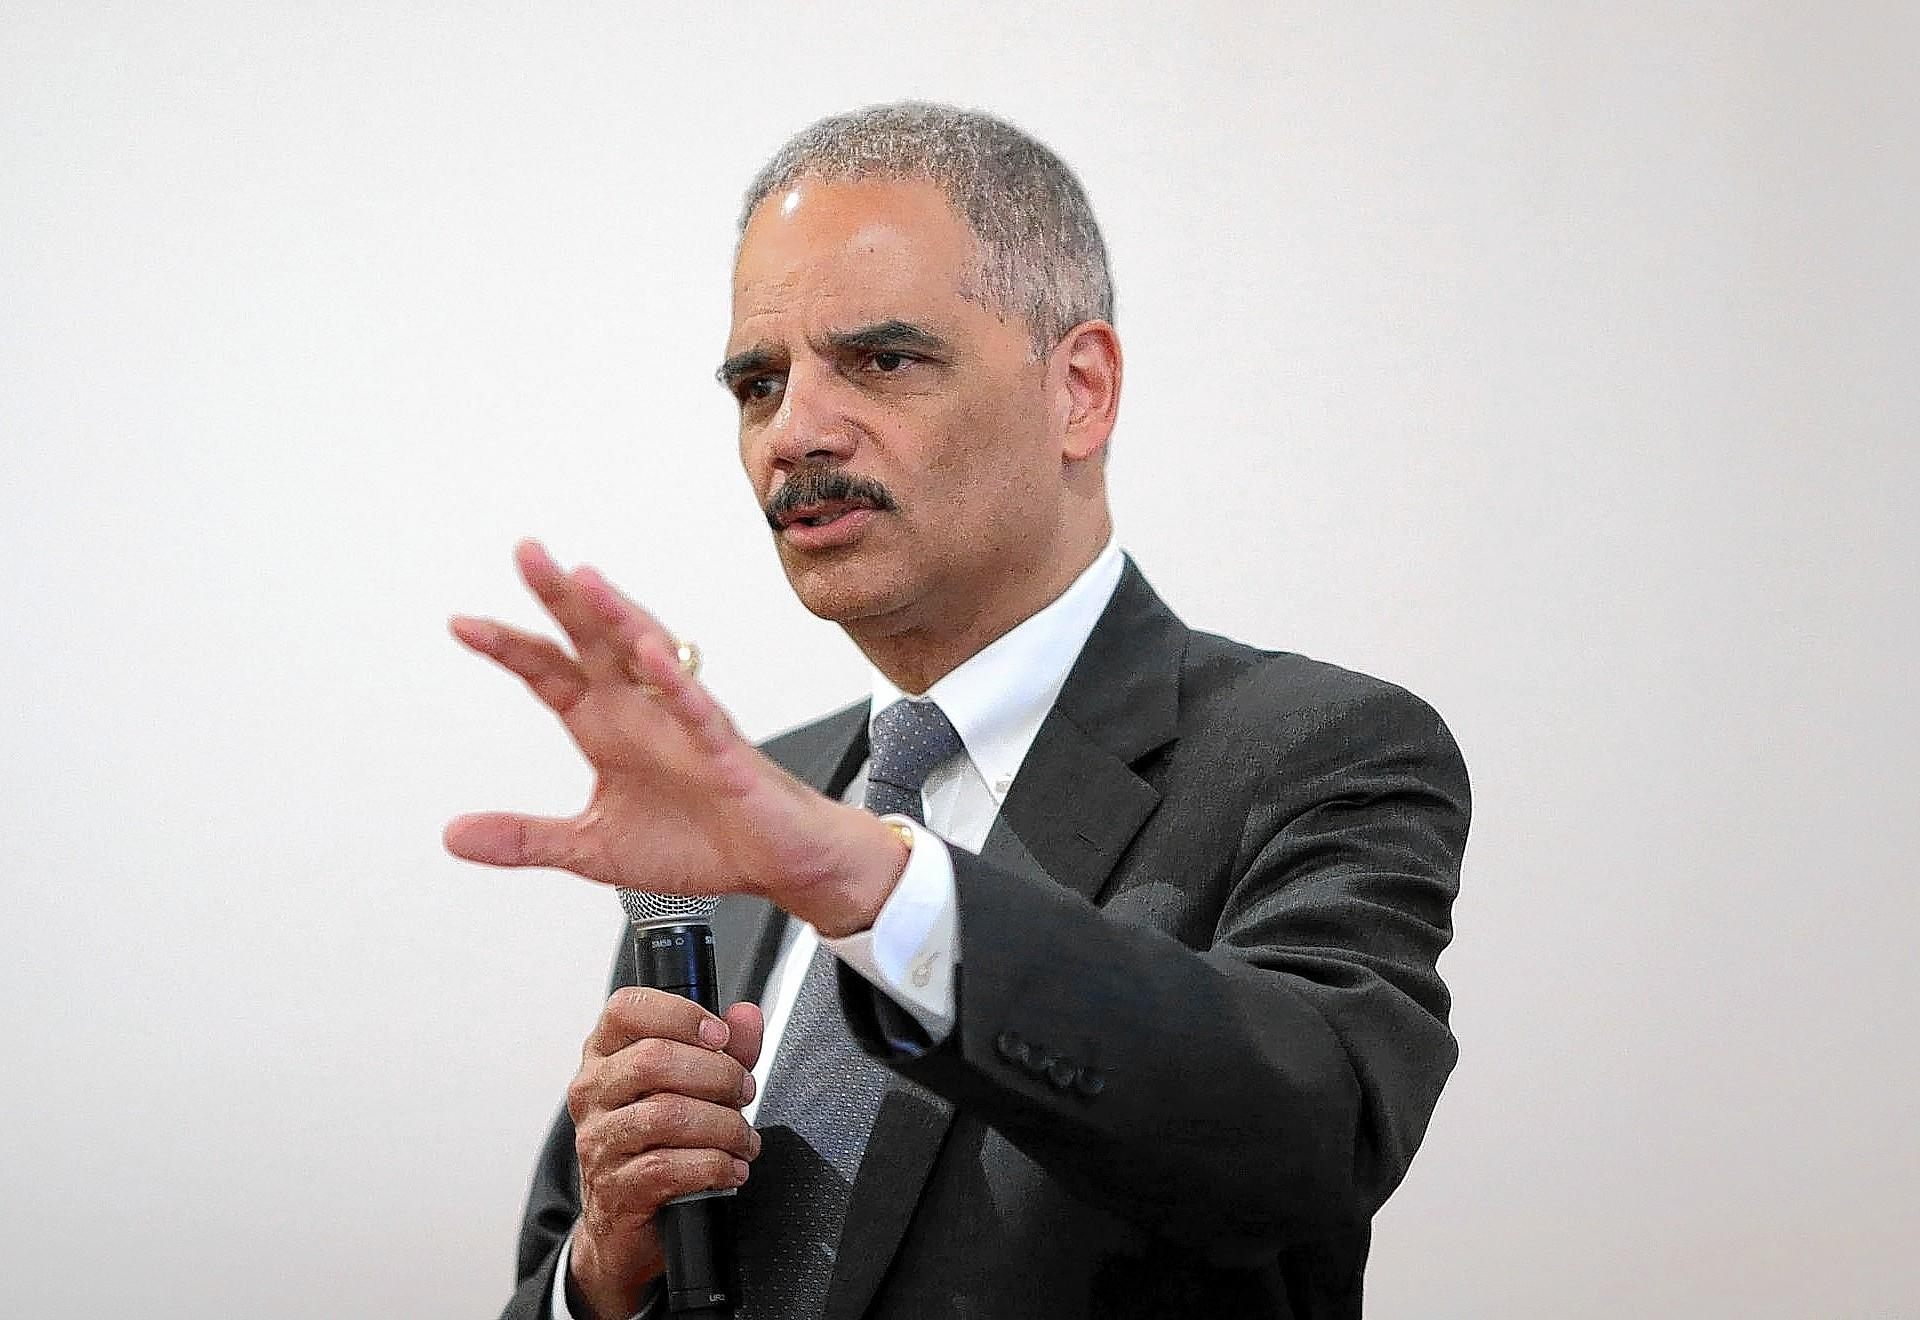 Atty. Gen. Eric H. Holder Jr. has been crusading for more lenient treatment for nonviolent drug offenders. In a speech Wednesday, he attempted to persuade critics that his department is working to fight heroin and prescription drug abuse.